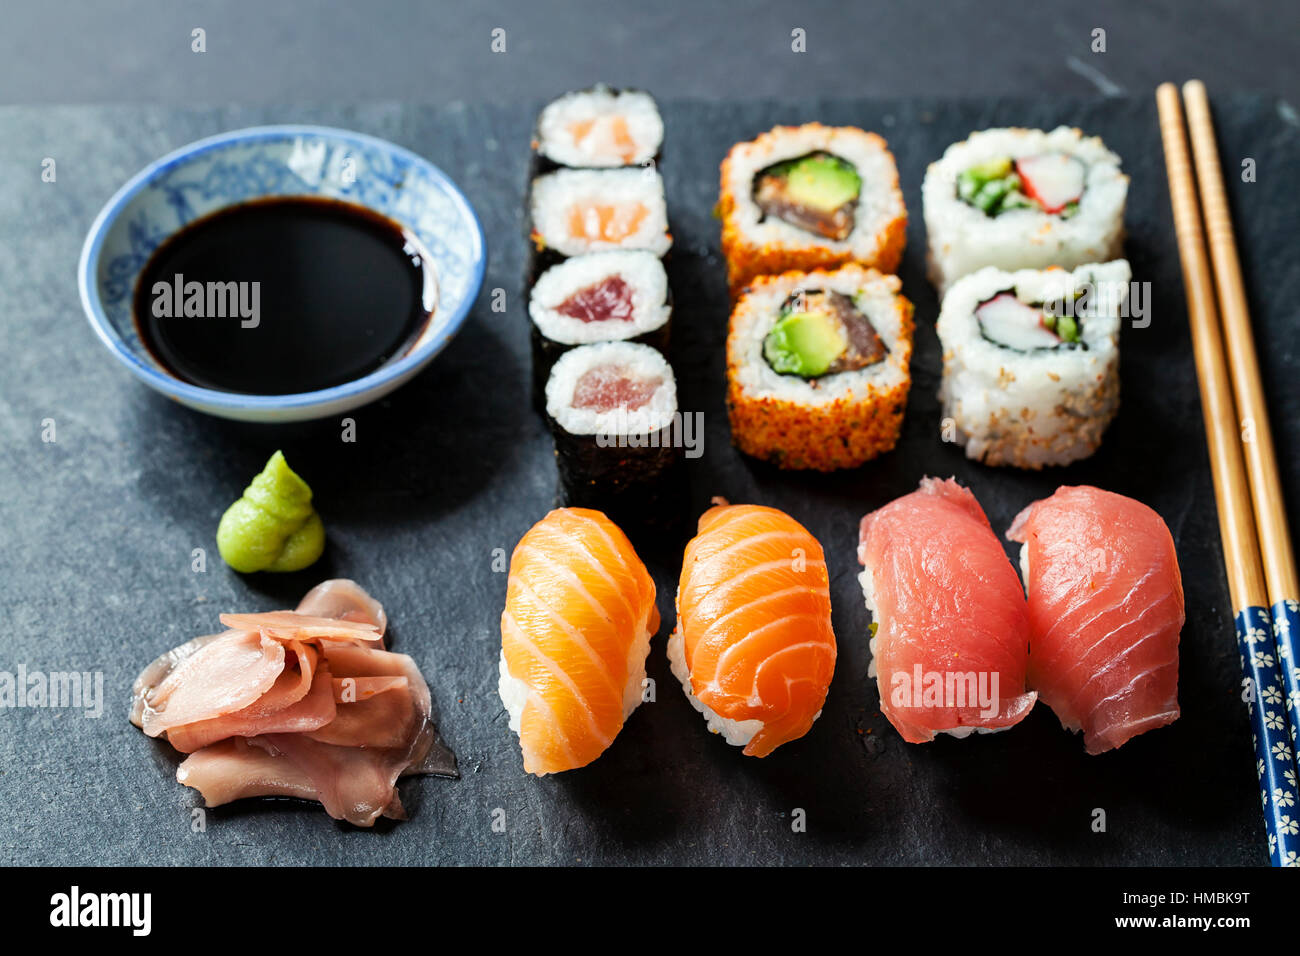 Salmon and tuna sushi on black slate plate - Stock Image